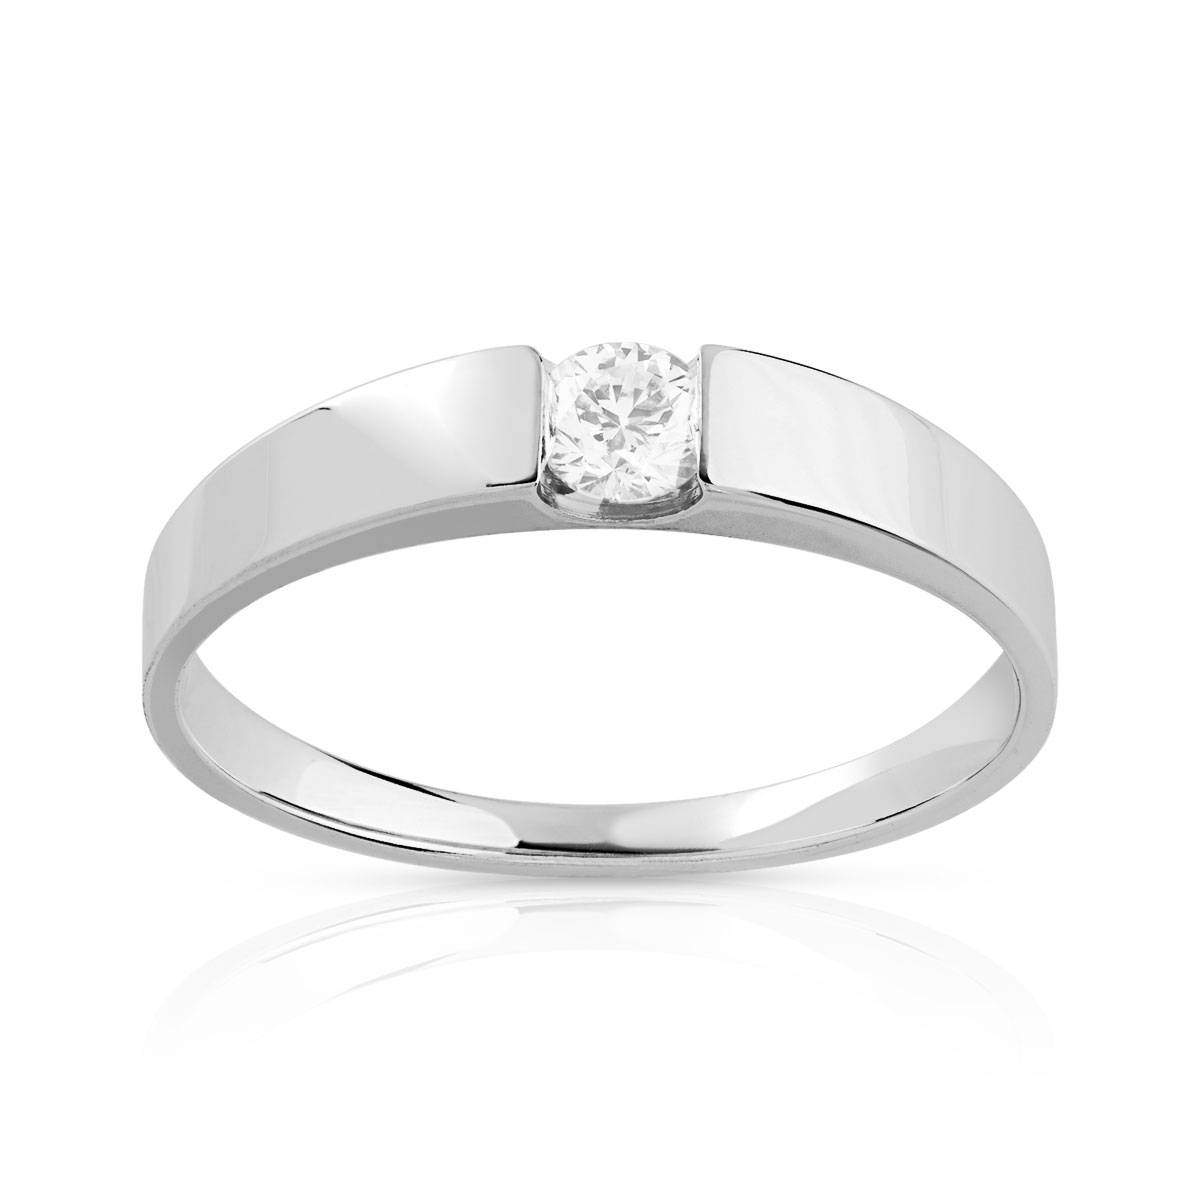 MATY Bague solitaire or 750 blanc diamant synthétique 0.15 carat- MATY